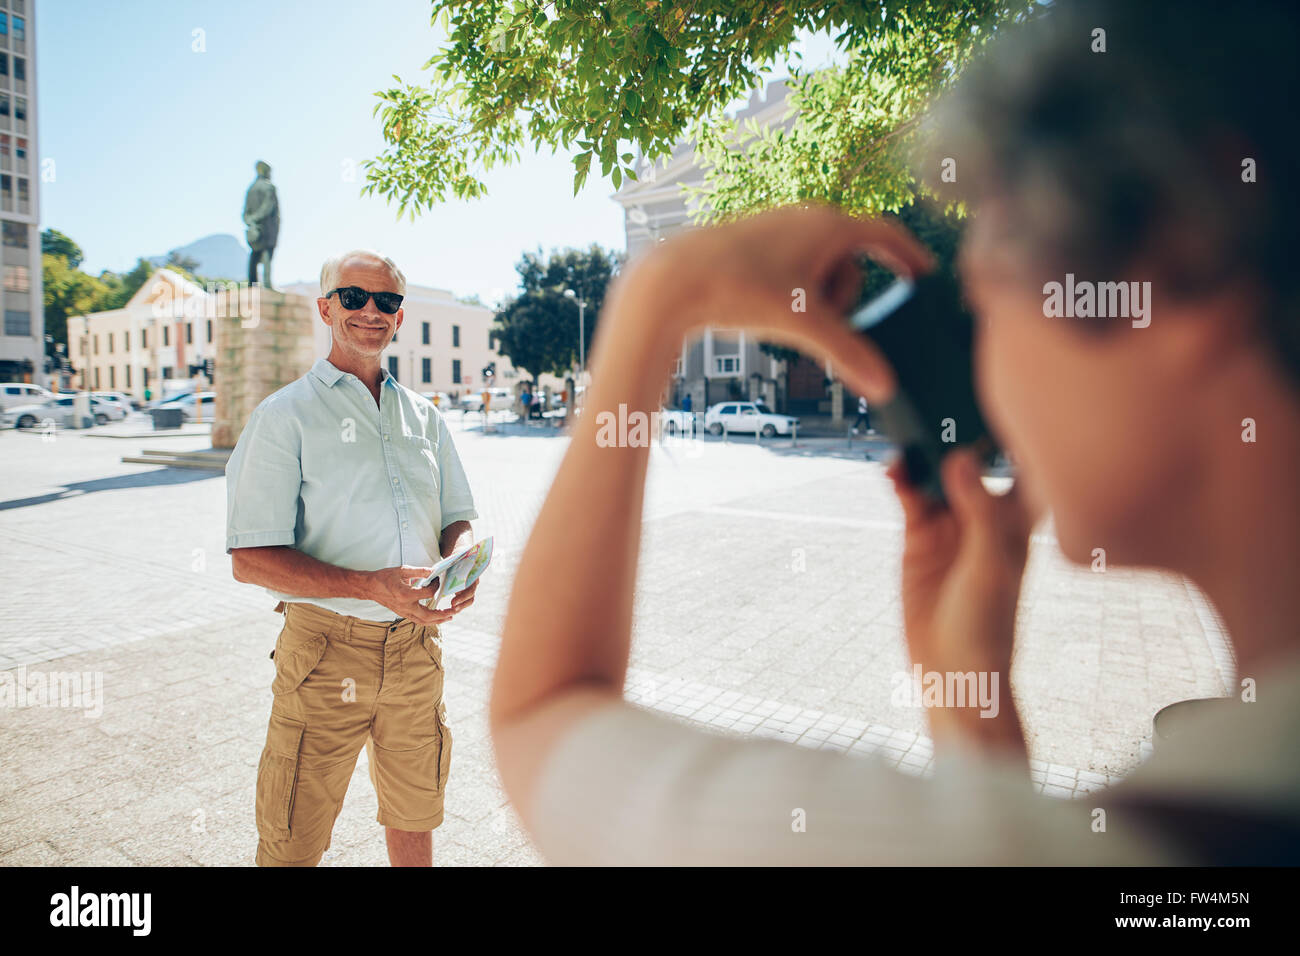 Senior man posing for photograph. Man being photographed by his wife on a vacation. - Stock Image